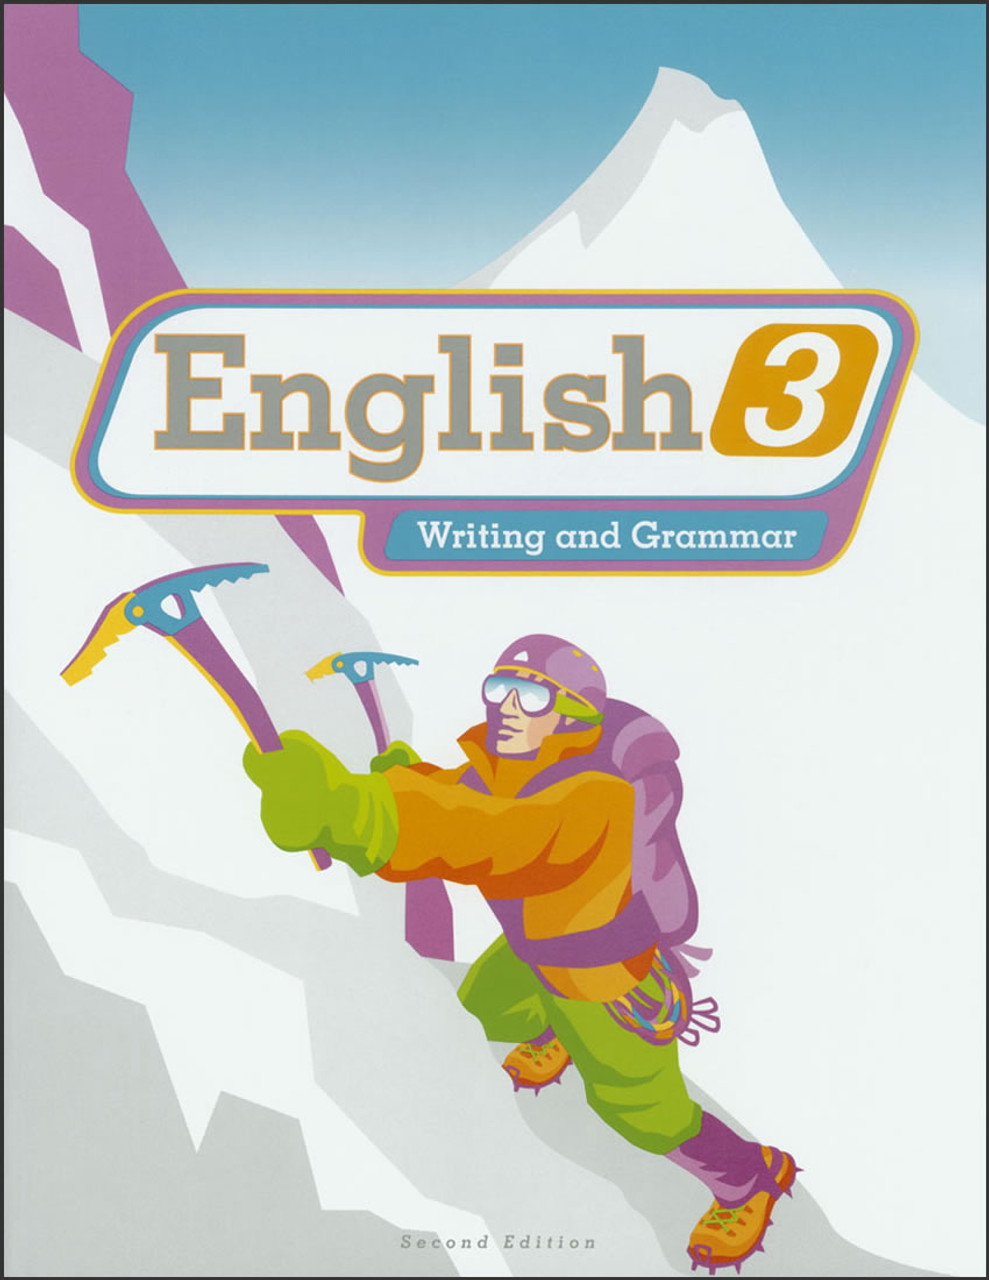 English 3: Writing and Grammar, 2nd edition